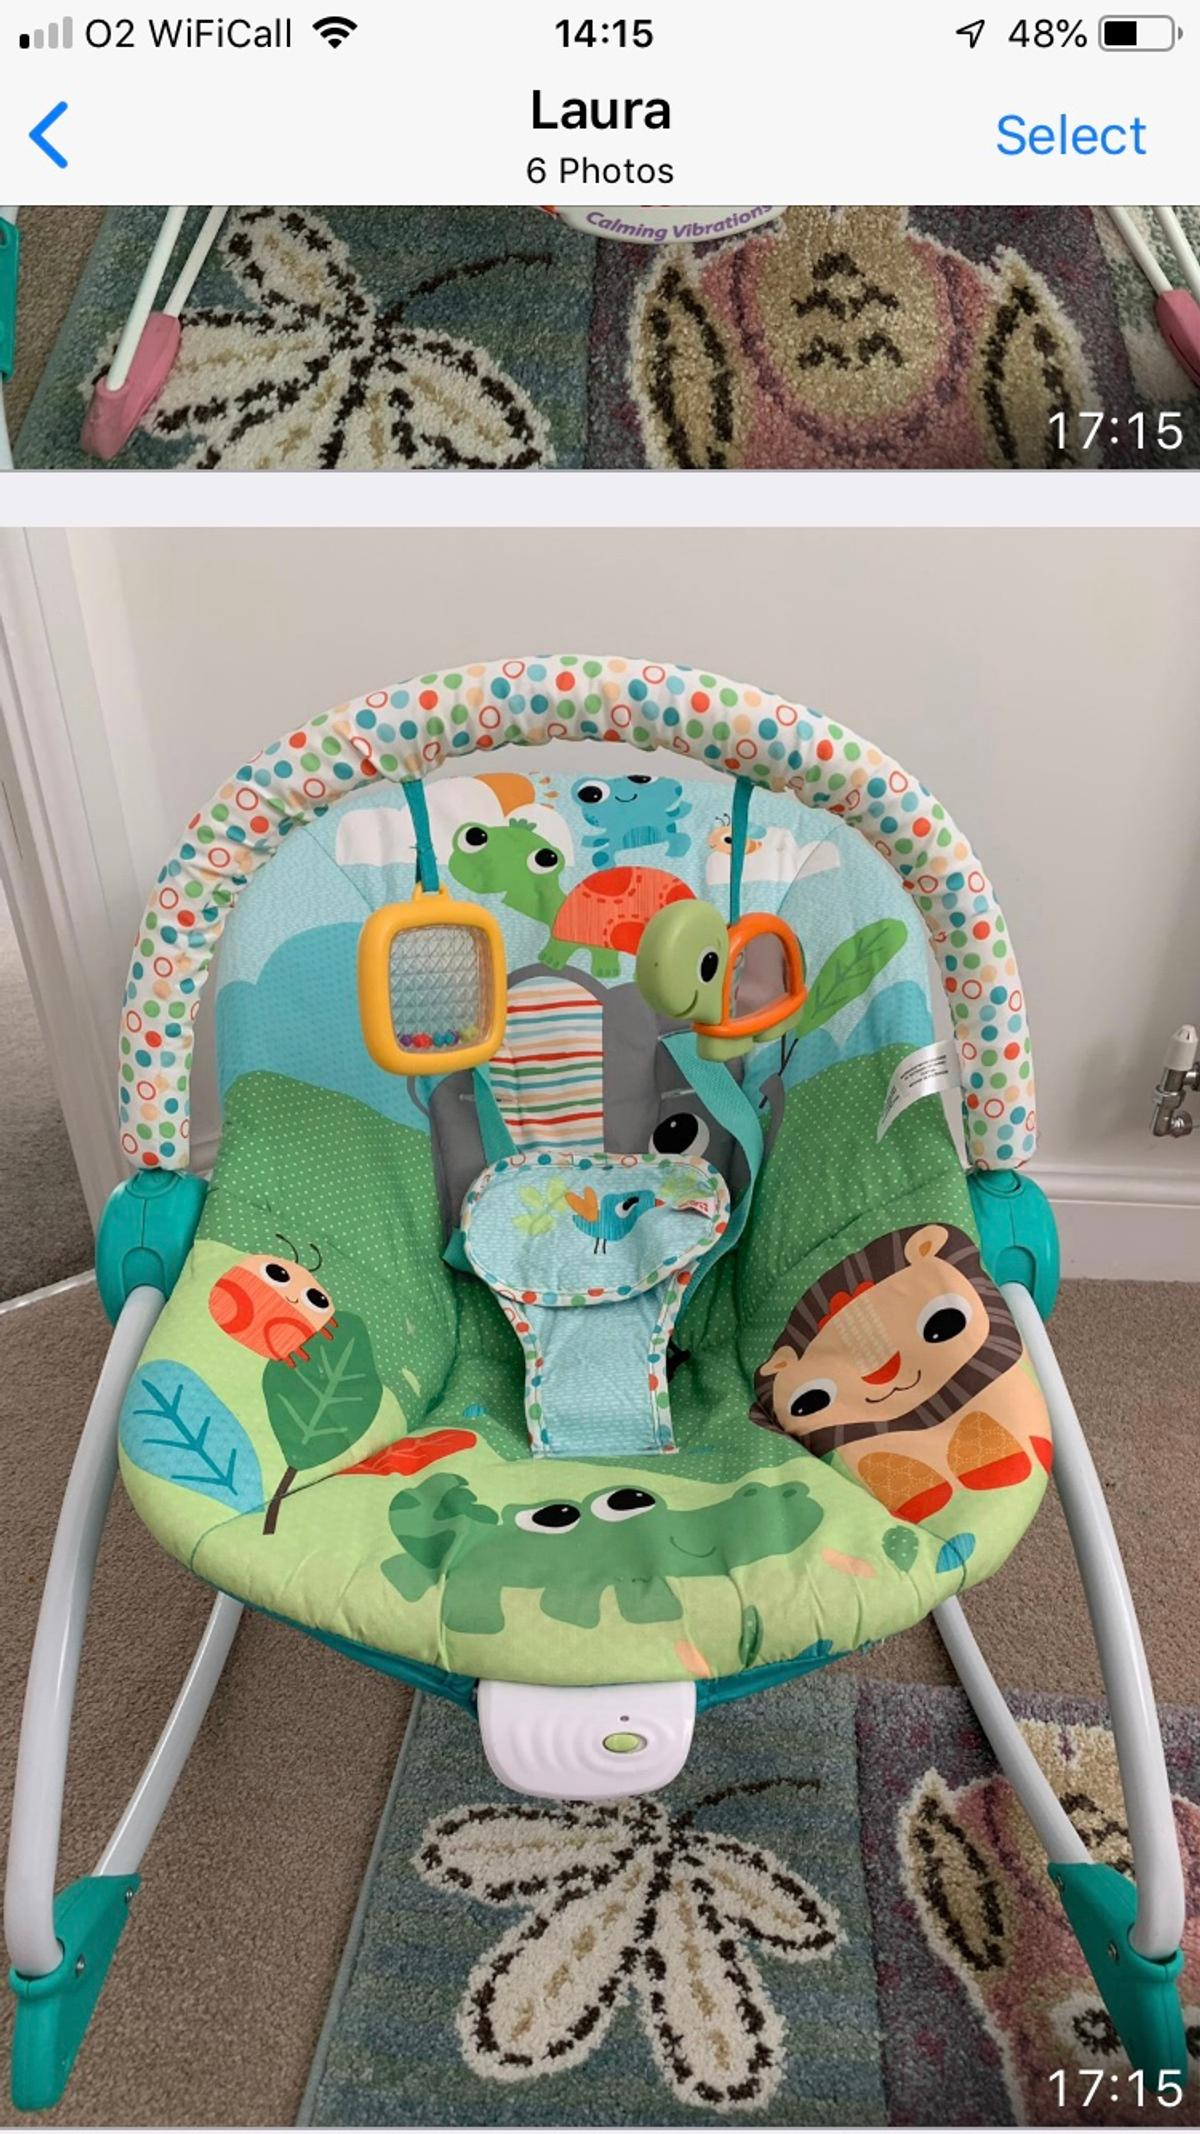 This baby to big kid rocker grows with baby from infant to toddler.Its very vibrant, comfortable and in good condition.